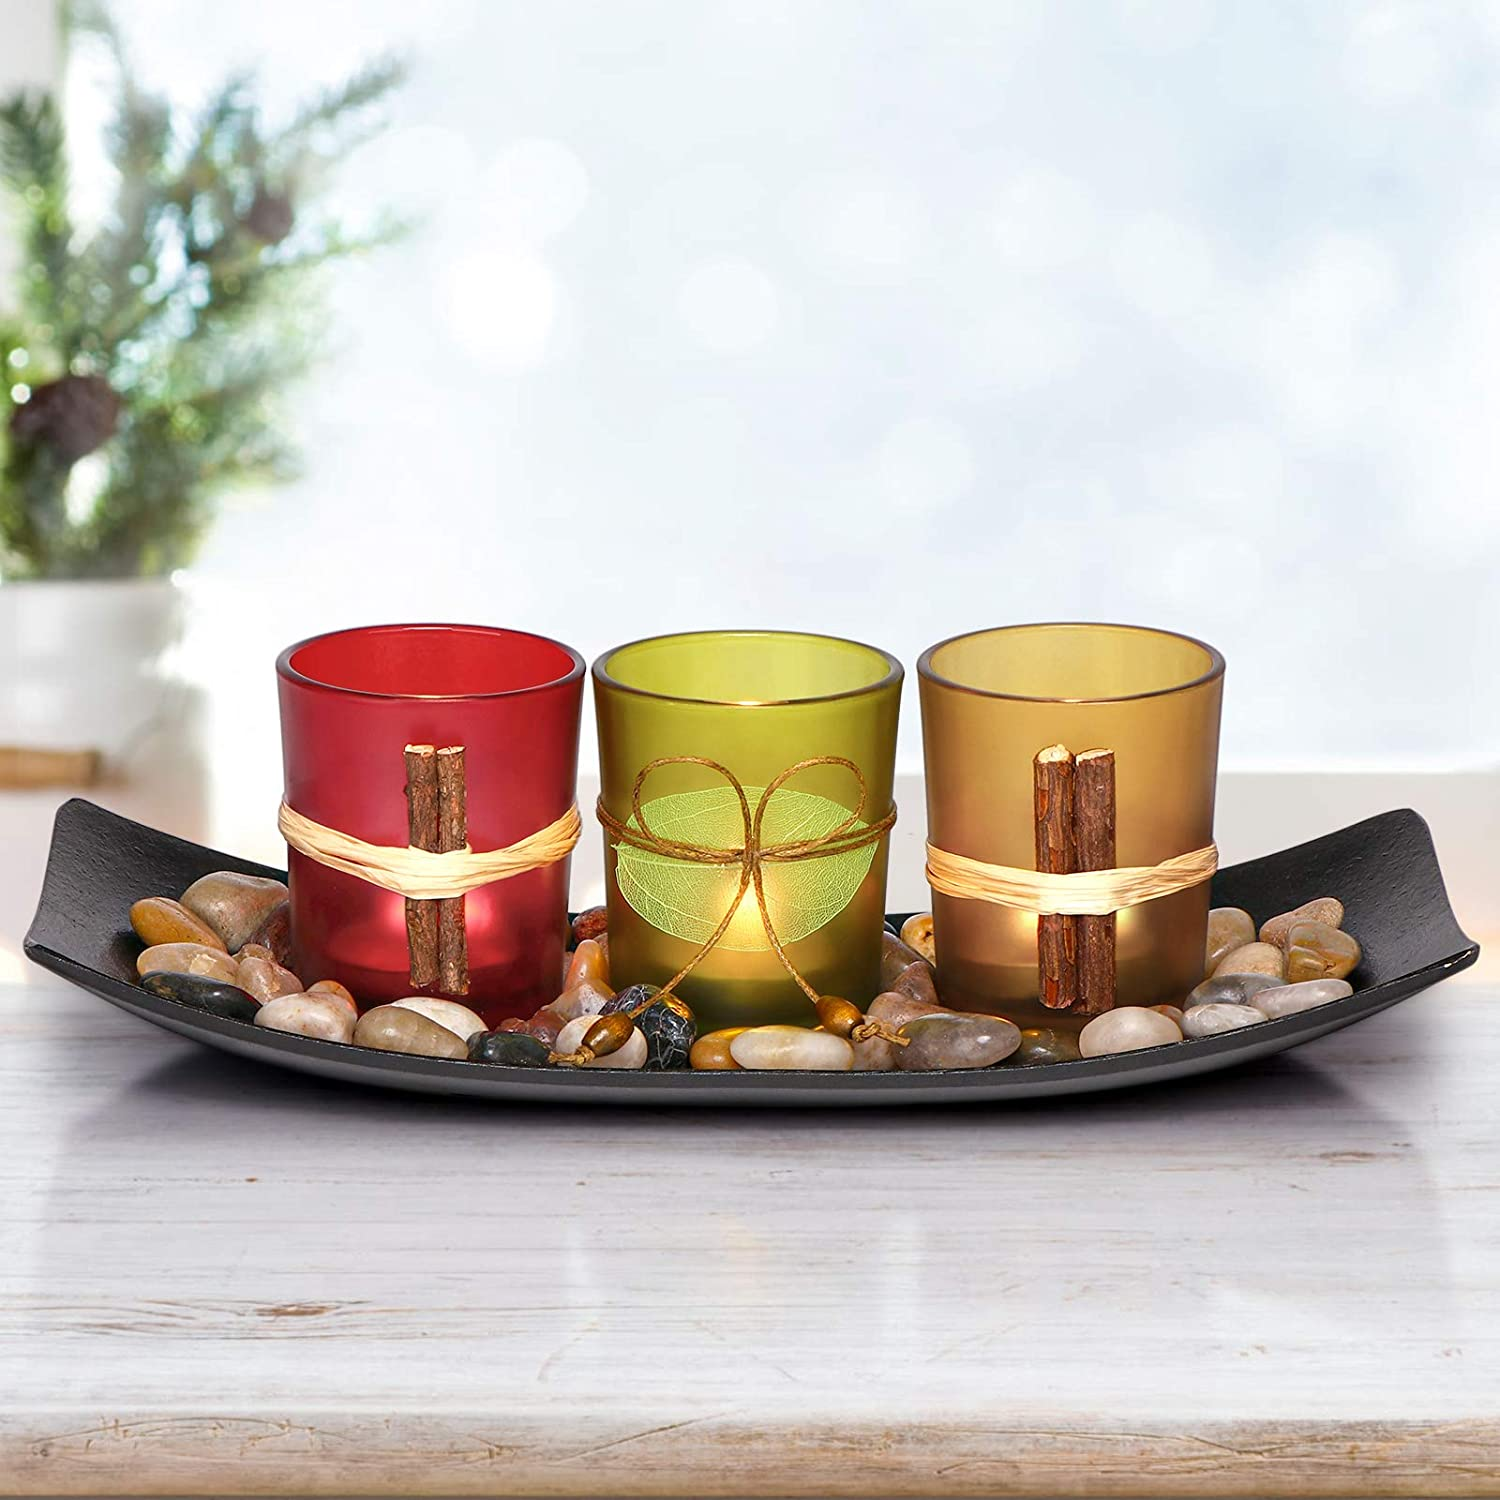 LETINE Cute Candle Holders Set Fit in LED Lights. Centerpieces for Coffee  Table, Bathroom Decor. Decorations for Farmhouse & Modern Style Bed Room.  ...